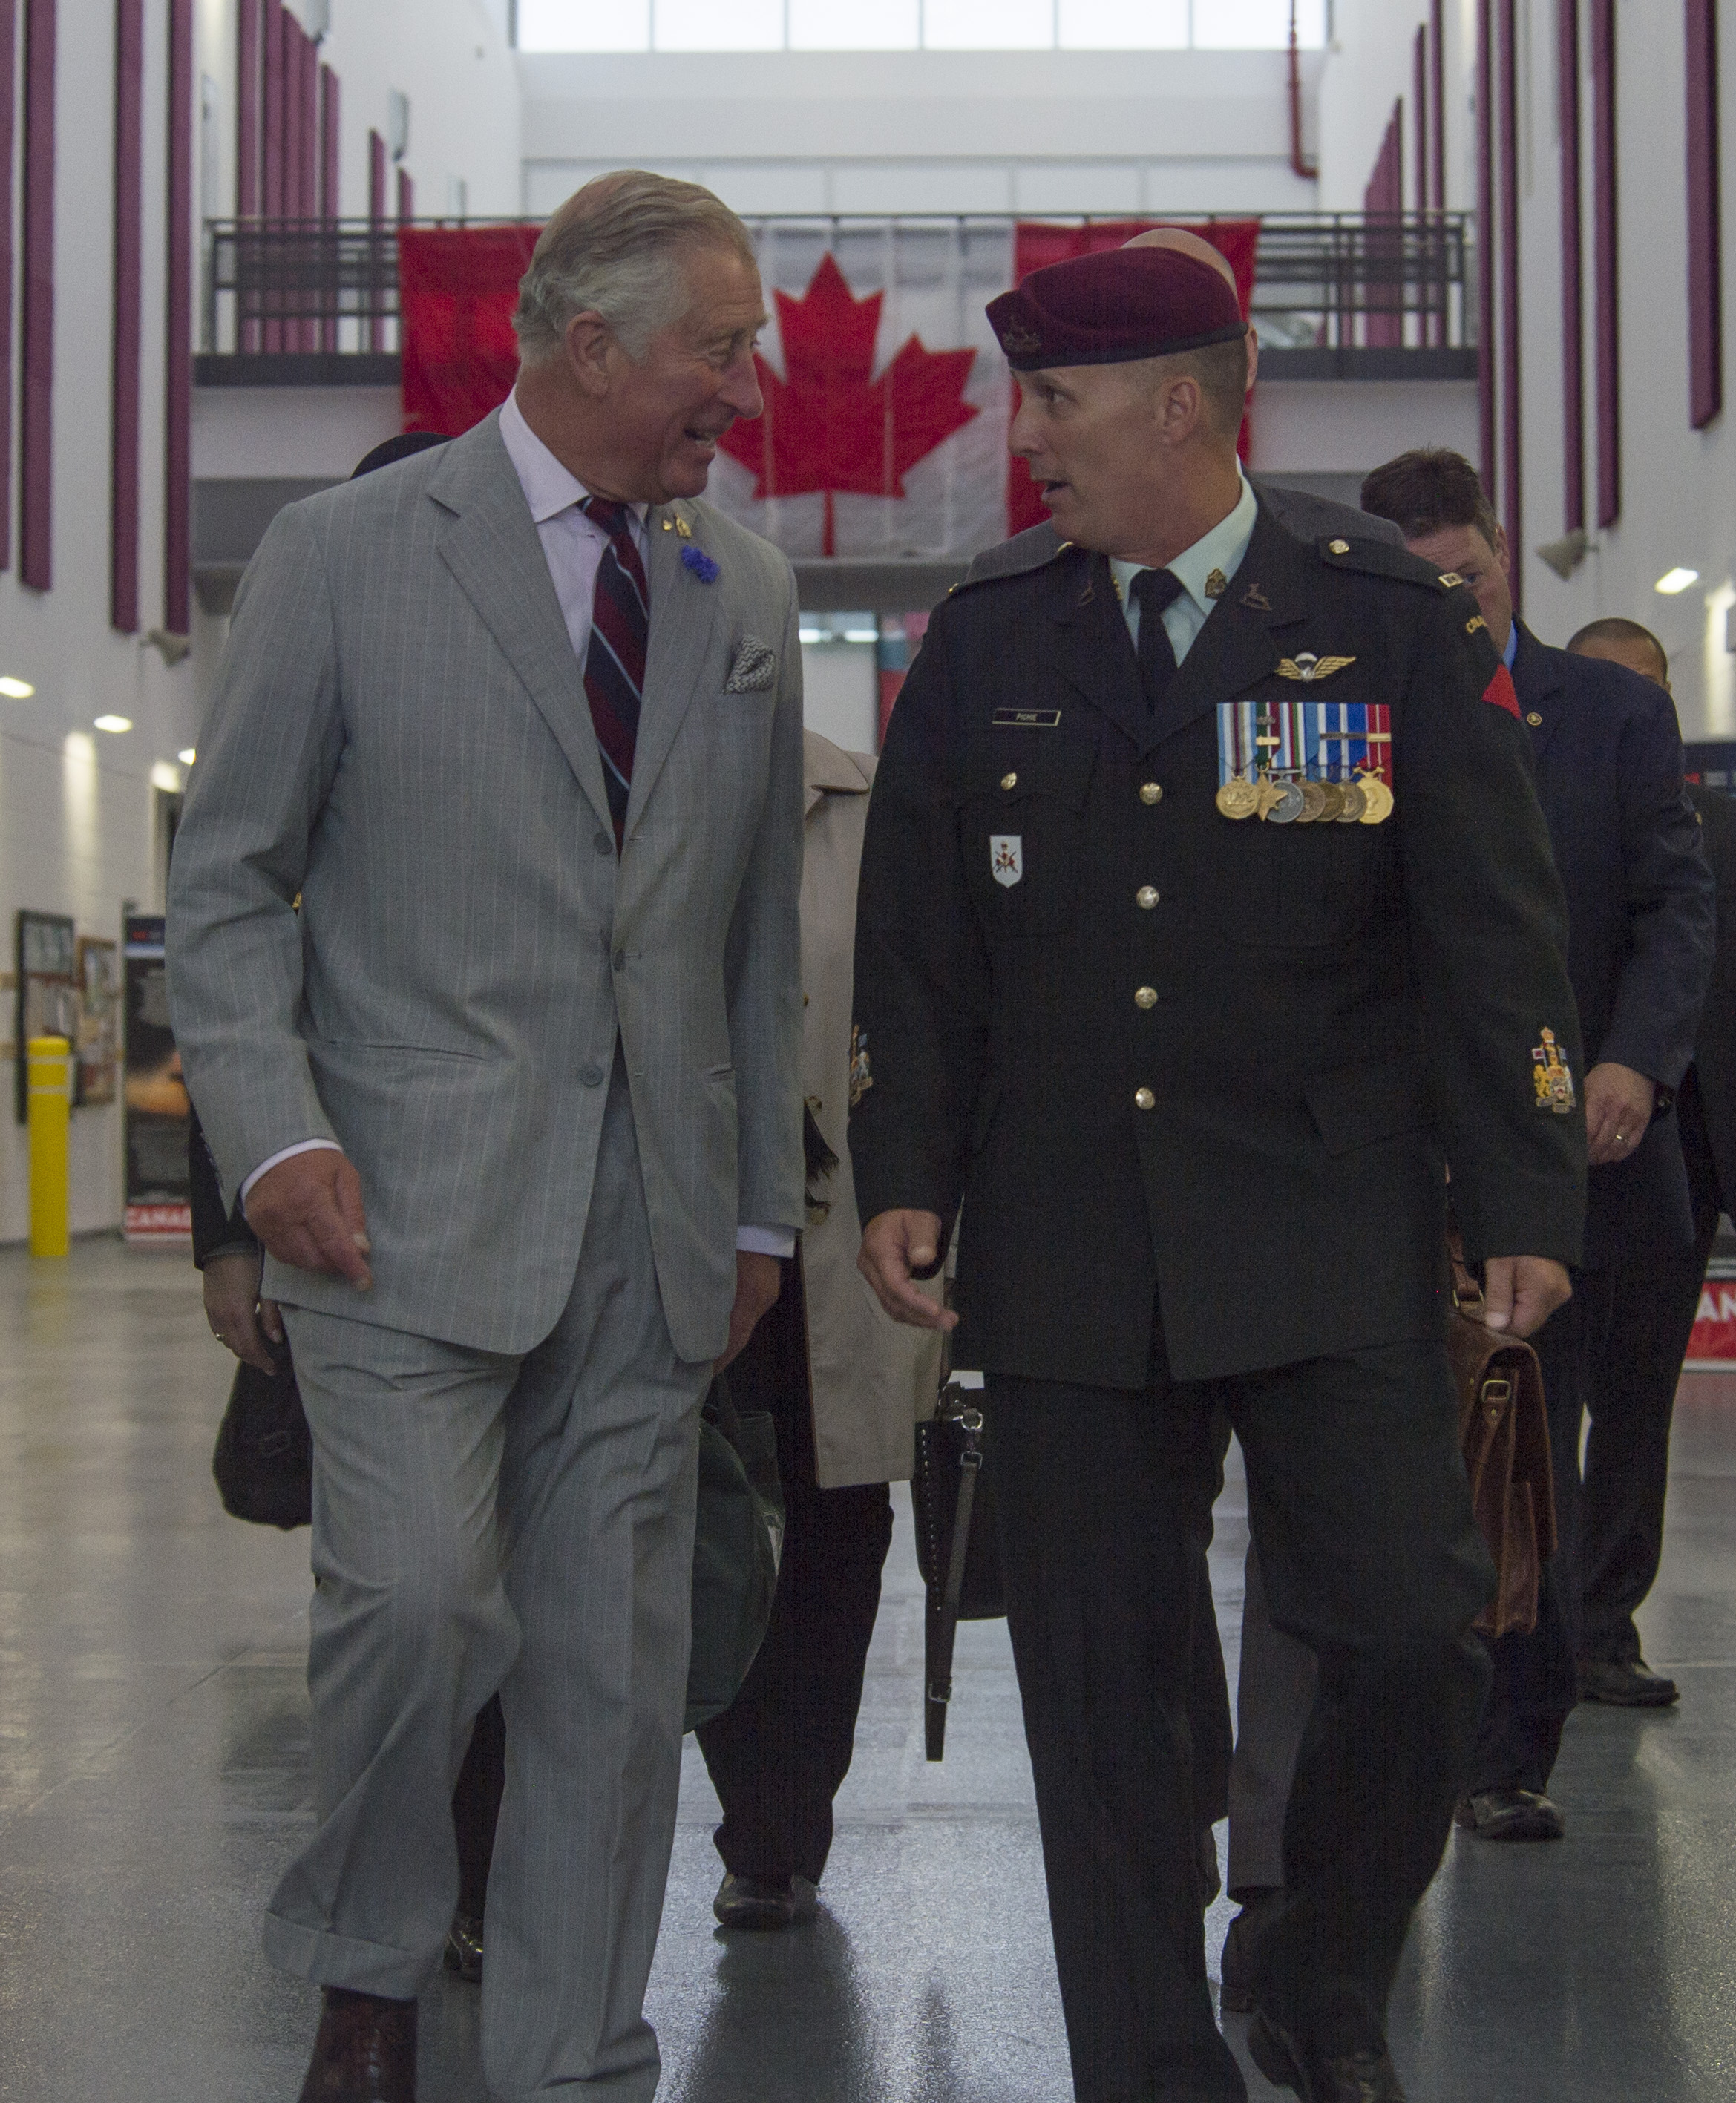 Accompanied by Chief Warrant Officer Kenneth Pichie, the Canadian Army Advanced Warfare Centre regimental sergeant-major, Prince Charles arrives at the Canadian Army Advanced Warfare Centre to see search and rescue, and paratrooper demonstrations at 8 Wing Trenton, Ontario, on June 30, 2017. PHOTO: Corporal Ryan Moulton, TN11-2017-0398-004